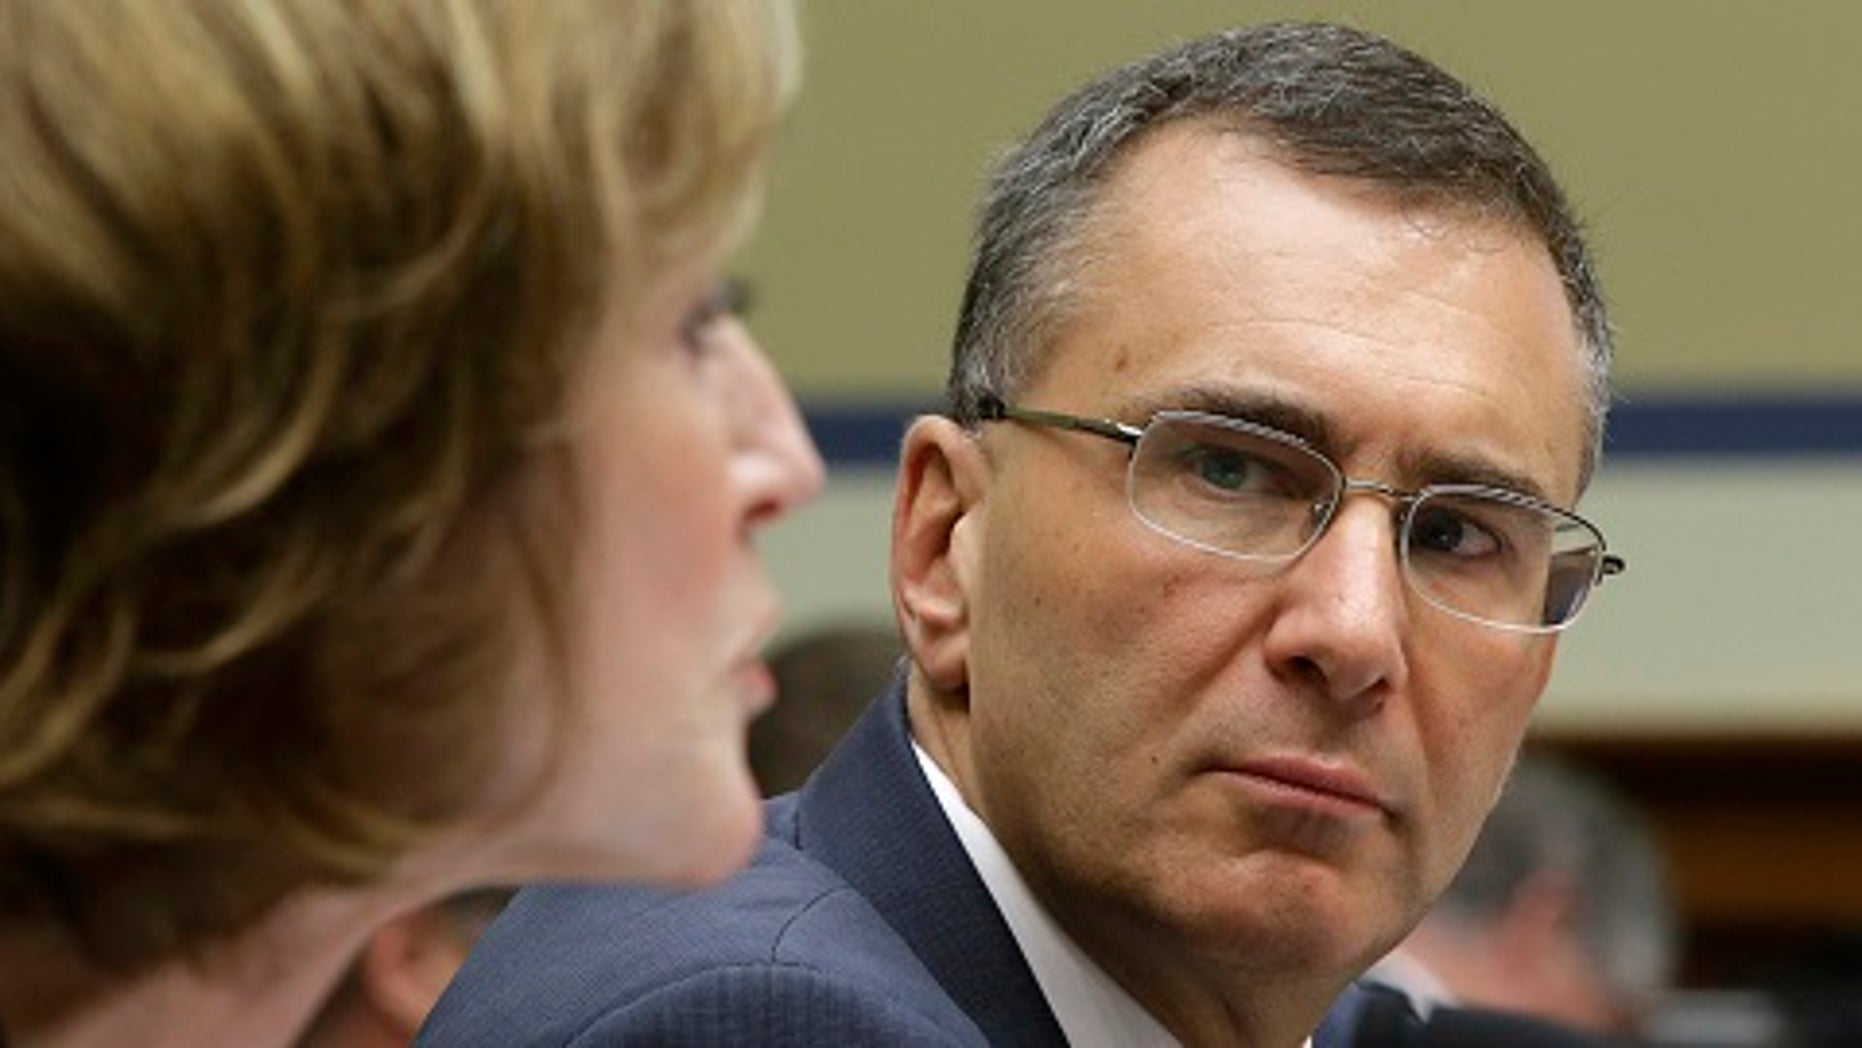 "Obamacare consultant Jonathan Gruber (R) listens to Centers for Medicare and Medicaid Services Administrator Marilyn Tavenner during testimony before a U.S. House Oversight and Government Reform hearing on ""Examining Obama Transparency Failures"" in Washington December 9, 2014. Gruber apologized on Tuesday for his recent remarks about ""the stupidity of the American voter,"" telling a congressional committee he did not think President Barack Obama's signature healthcare law was passed in a deceptive manner. REUTERS/Gary Cameron (UNITED STATES - Tags: POLITICS HEALTH) - RTR4HBJA"